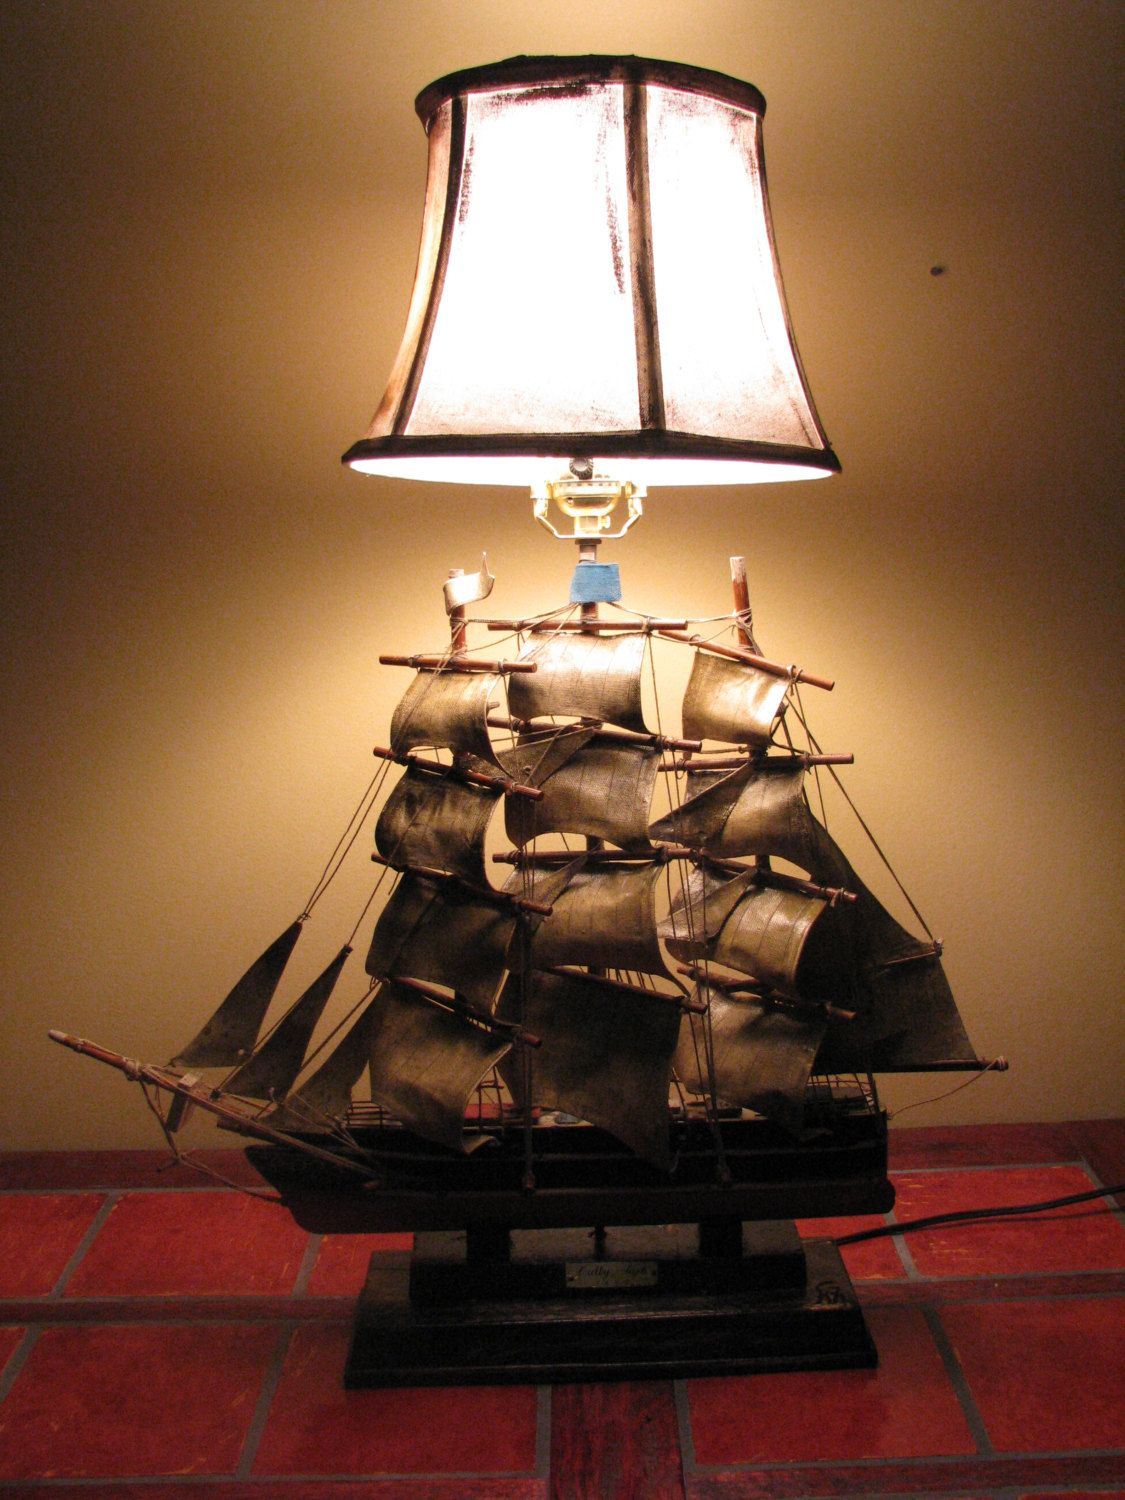 Pleasing Cutty Sark Ship Table Lamp Upcycled Ship Lamp Vintage Ship Interior Design Ideas Clesiryabchikinfo